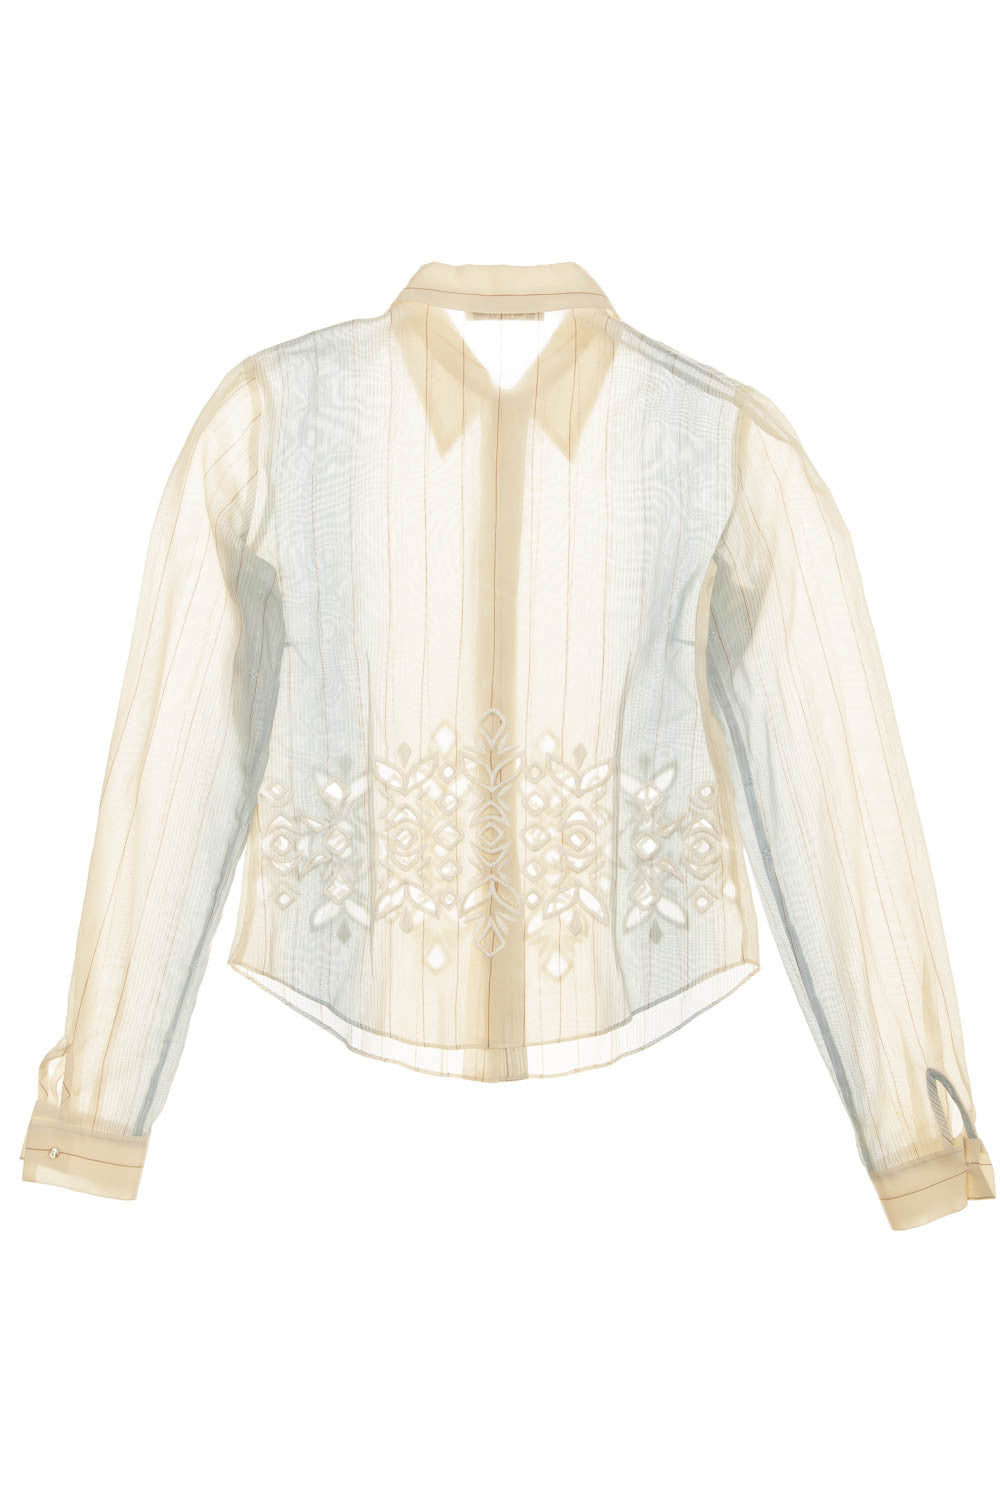 316c9aa9e8143d Chloe - Light Blue and Tan Long Sleeve Button Down with Cut Outs - FR 38